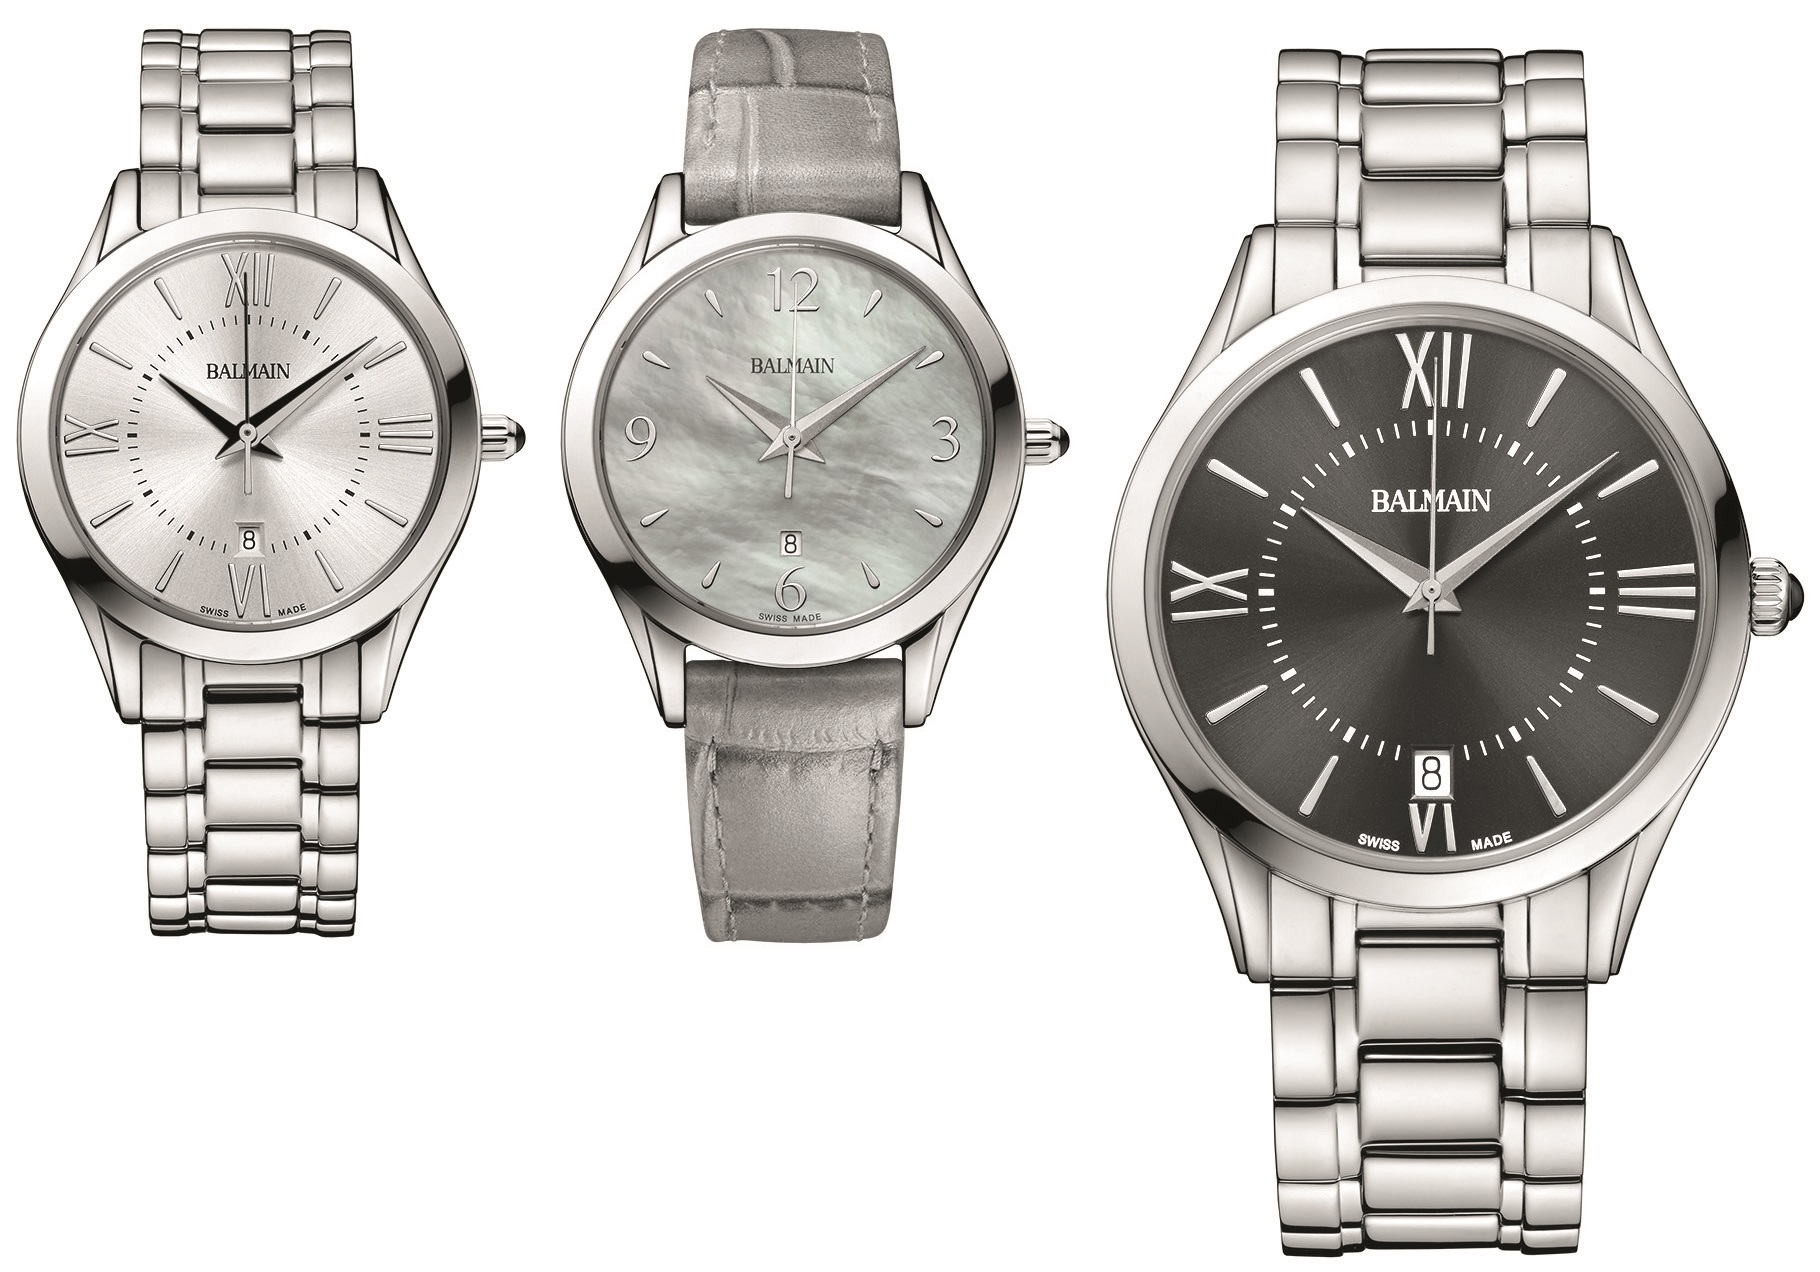 Balmain Classic R Grande pair watches_gent_Lady_B4111.33.22